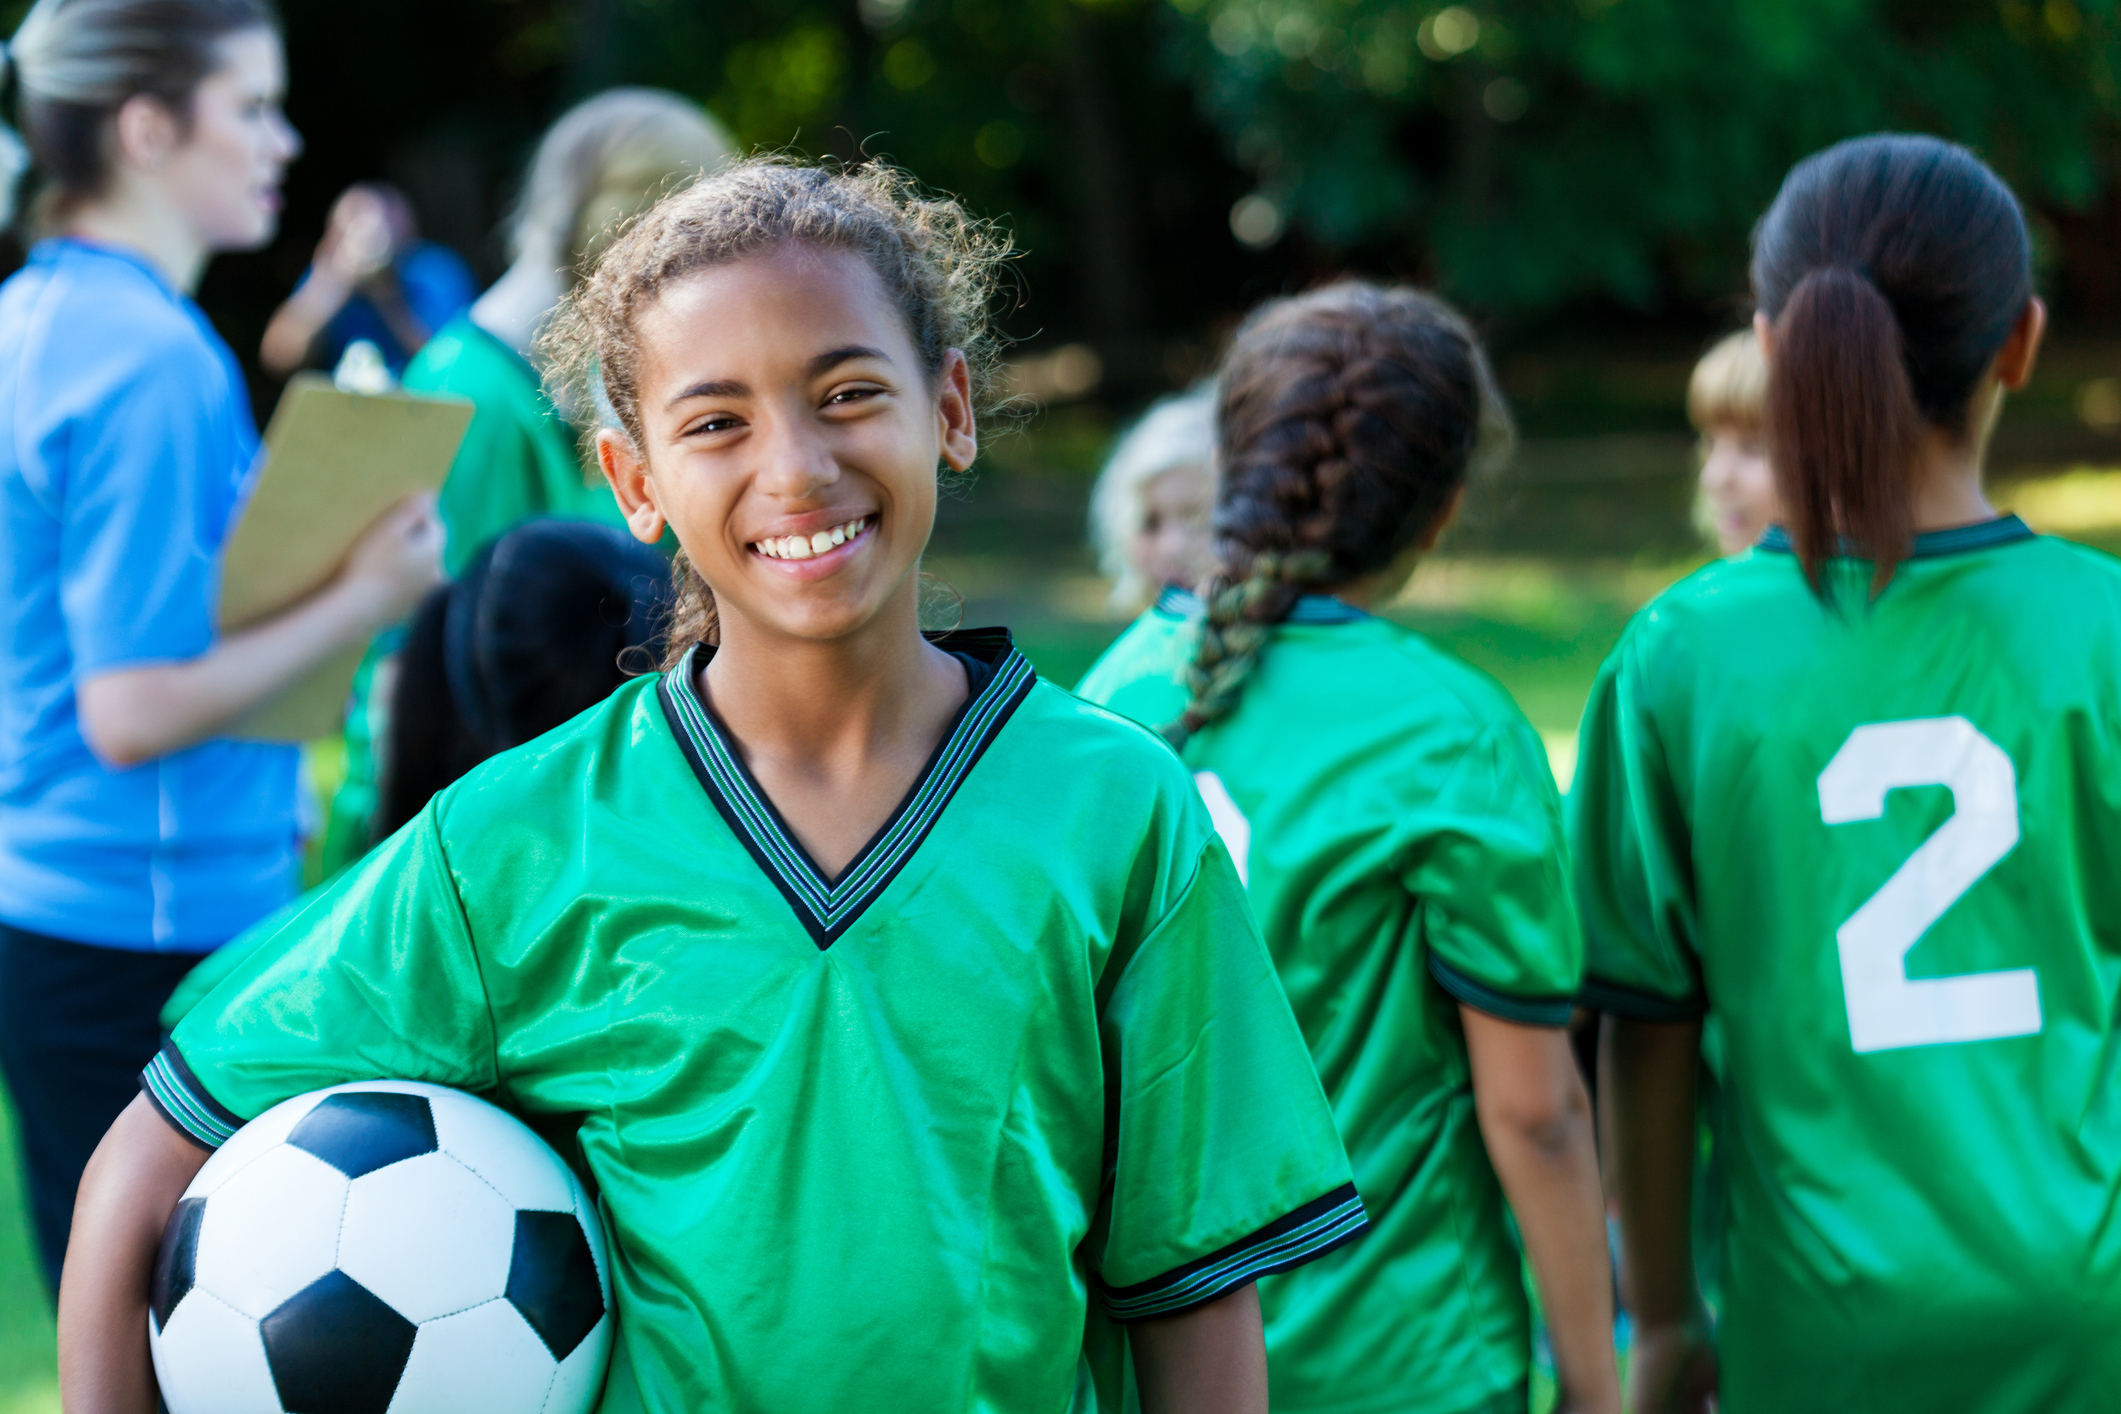 Pretty preteen soccer player smiles at the camera while holding a soccer ball. She is wearing a green jersey. Her team and coach are in the background.